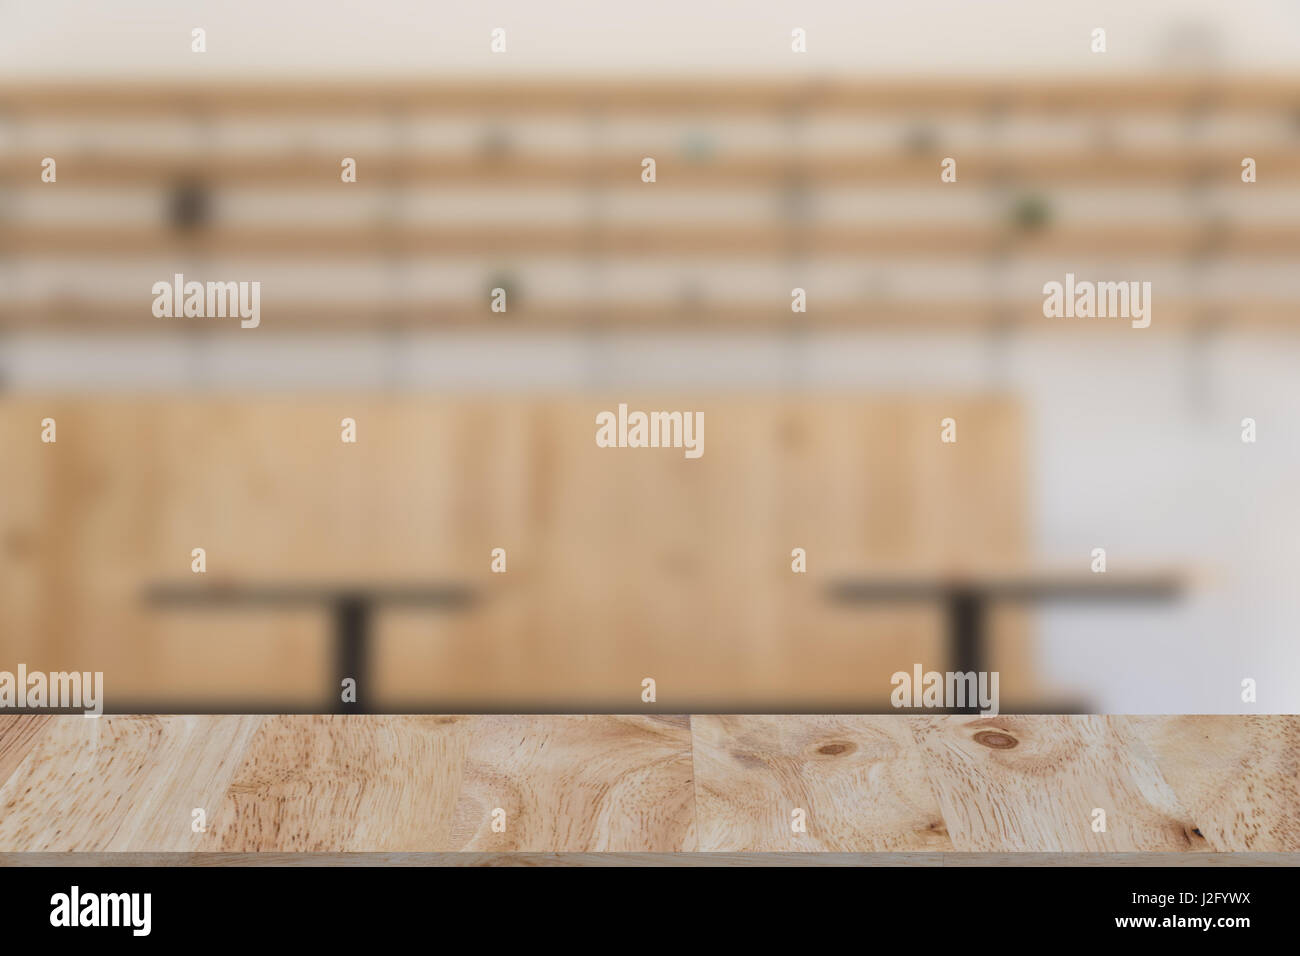 blur coffee shop or cafe restaurant interior with selected focus